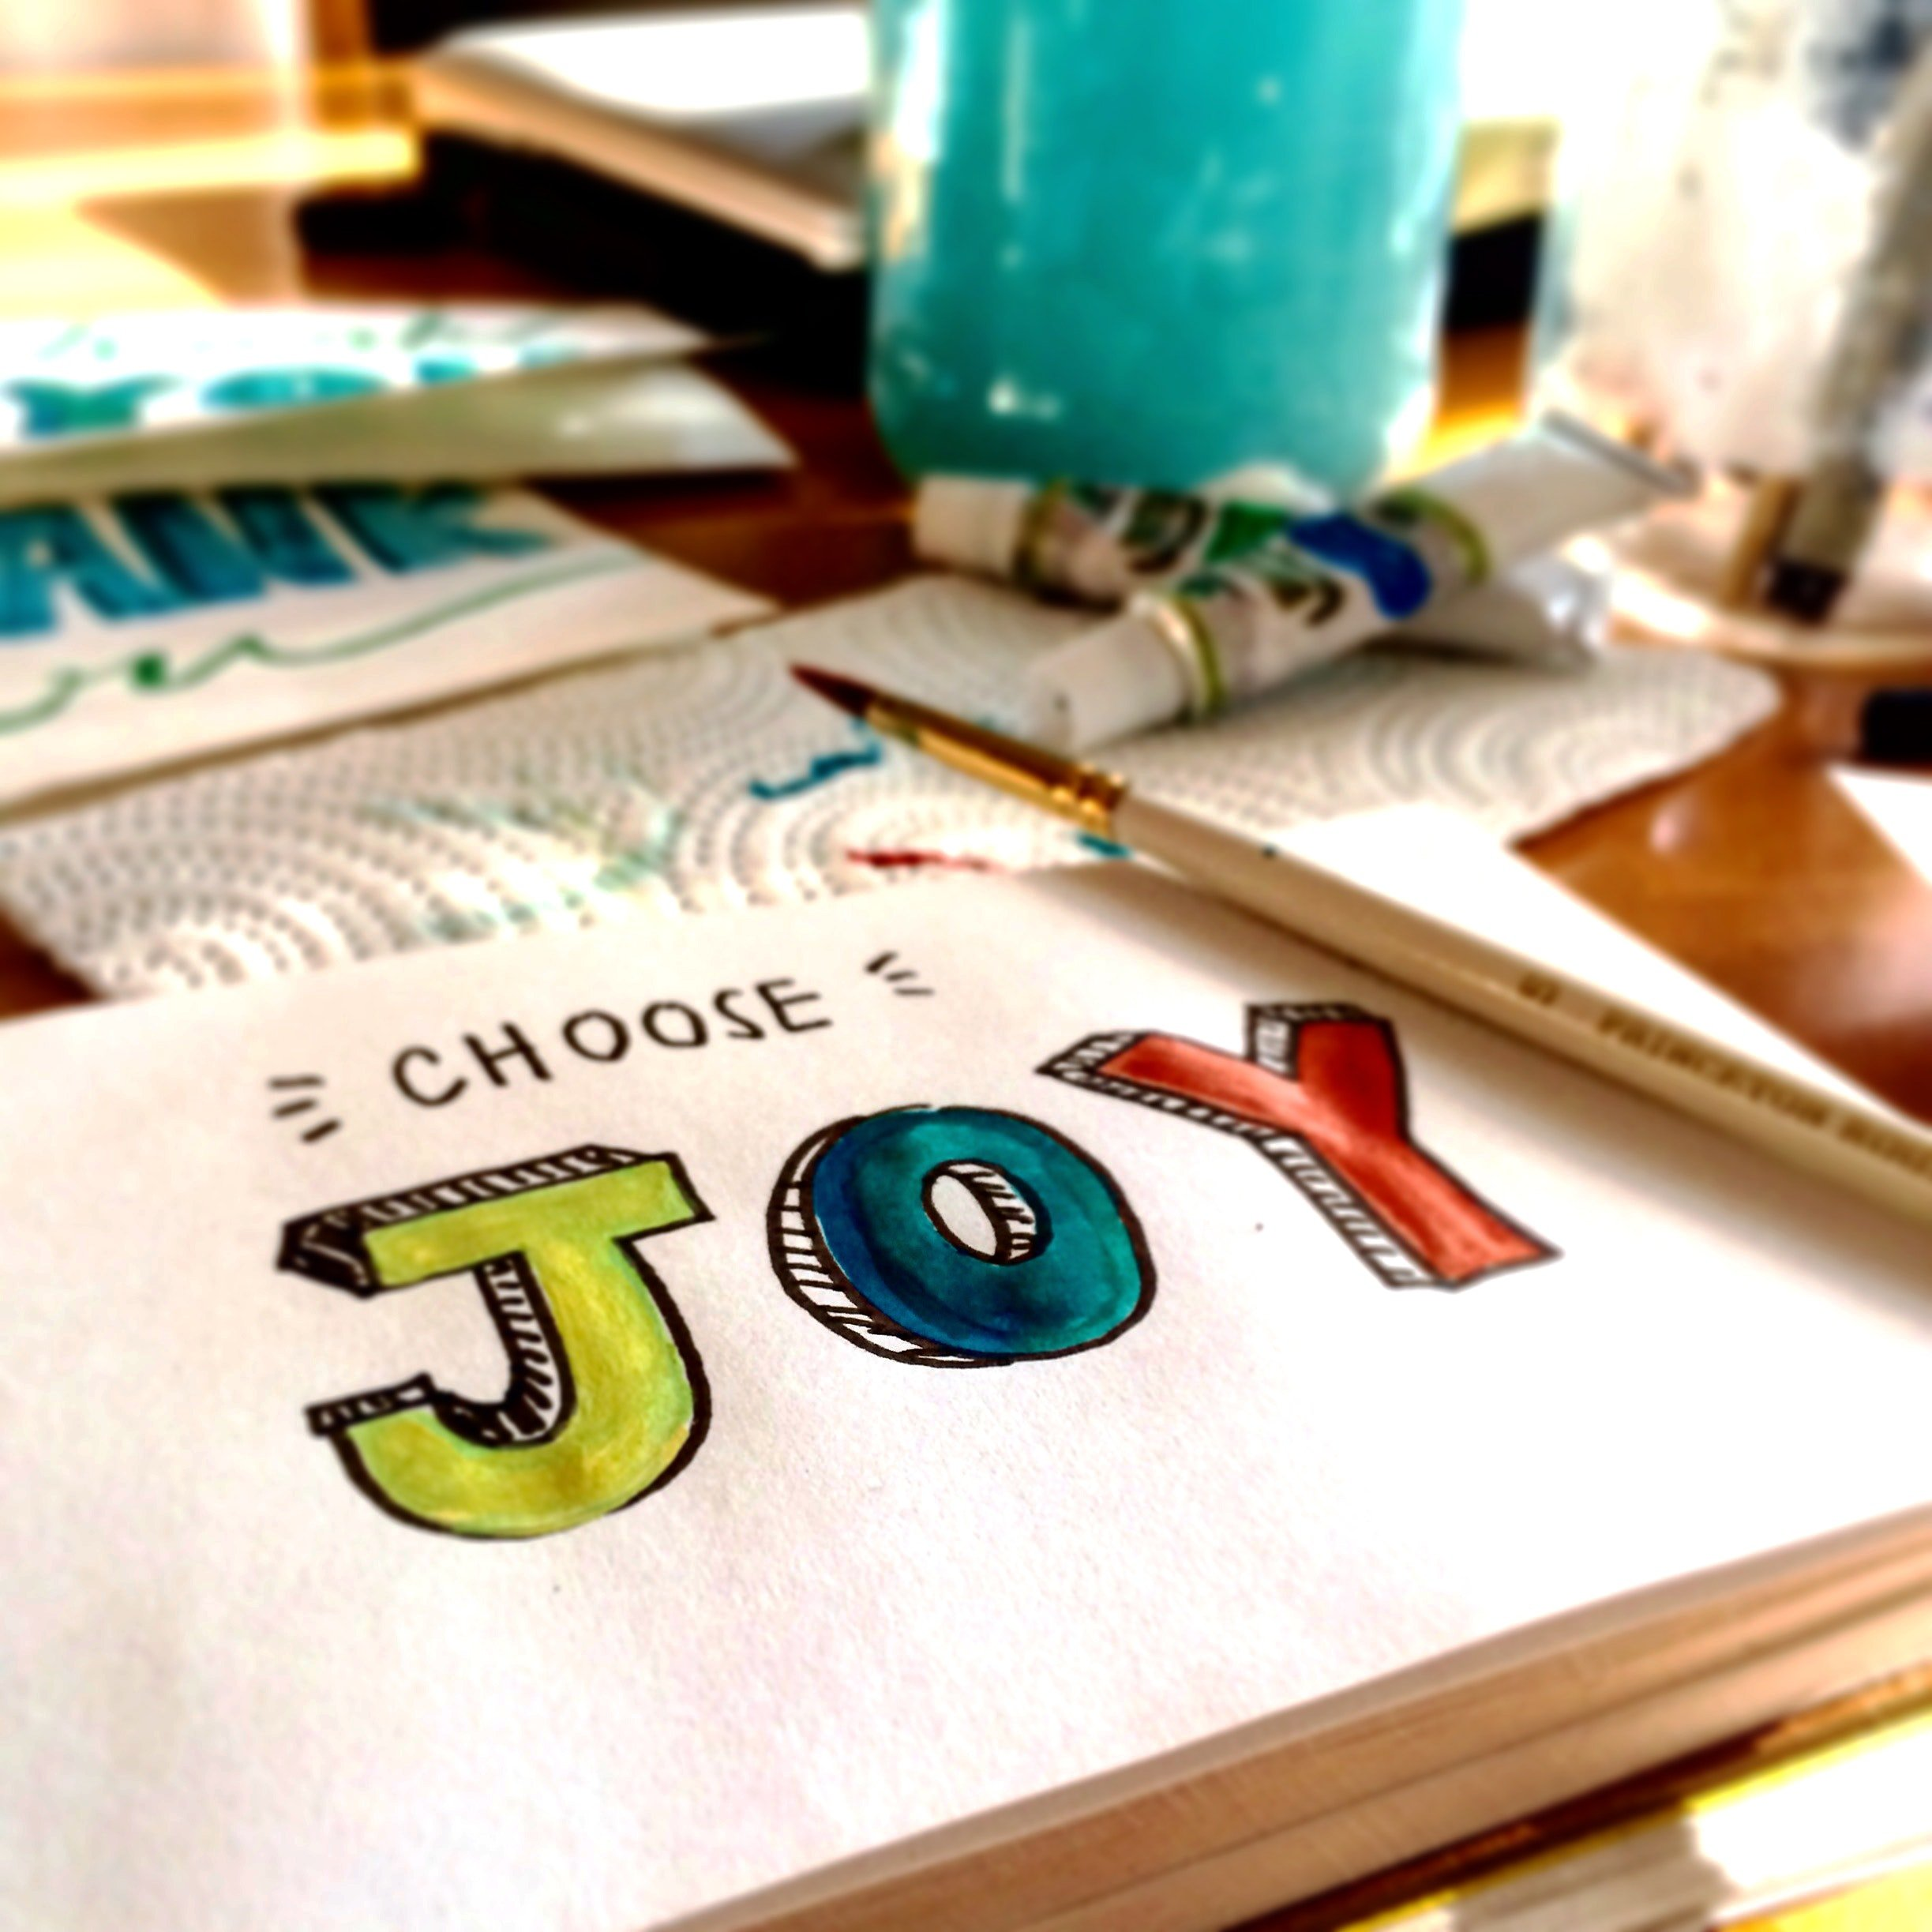 The Beginner's Guide to Finding Joy Every Day